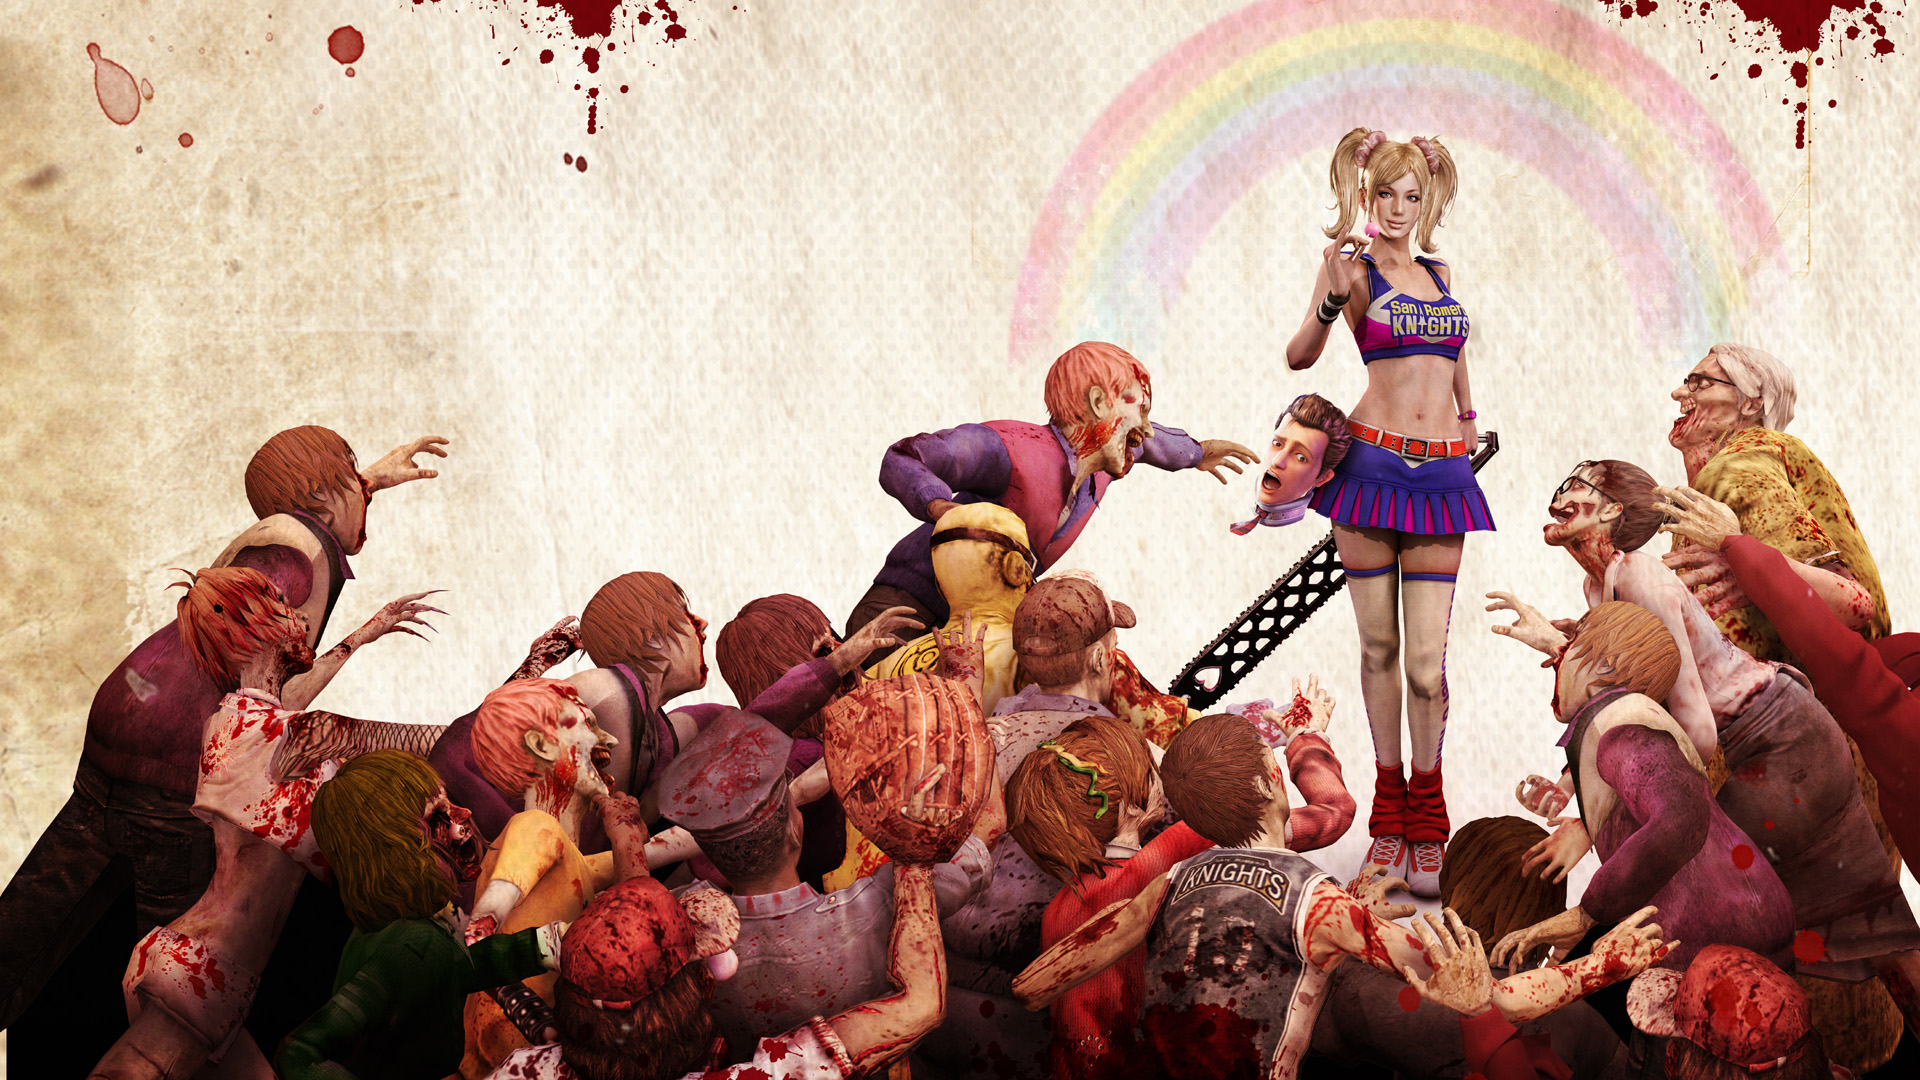 Lollipop Chainsaw Zombie Game 1548.8 Kb